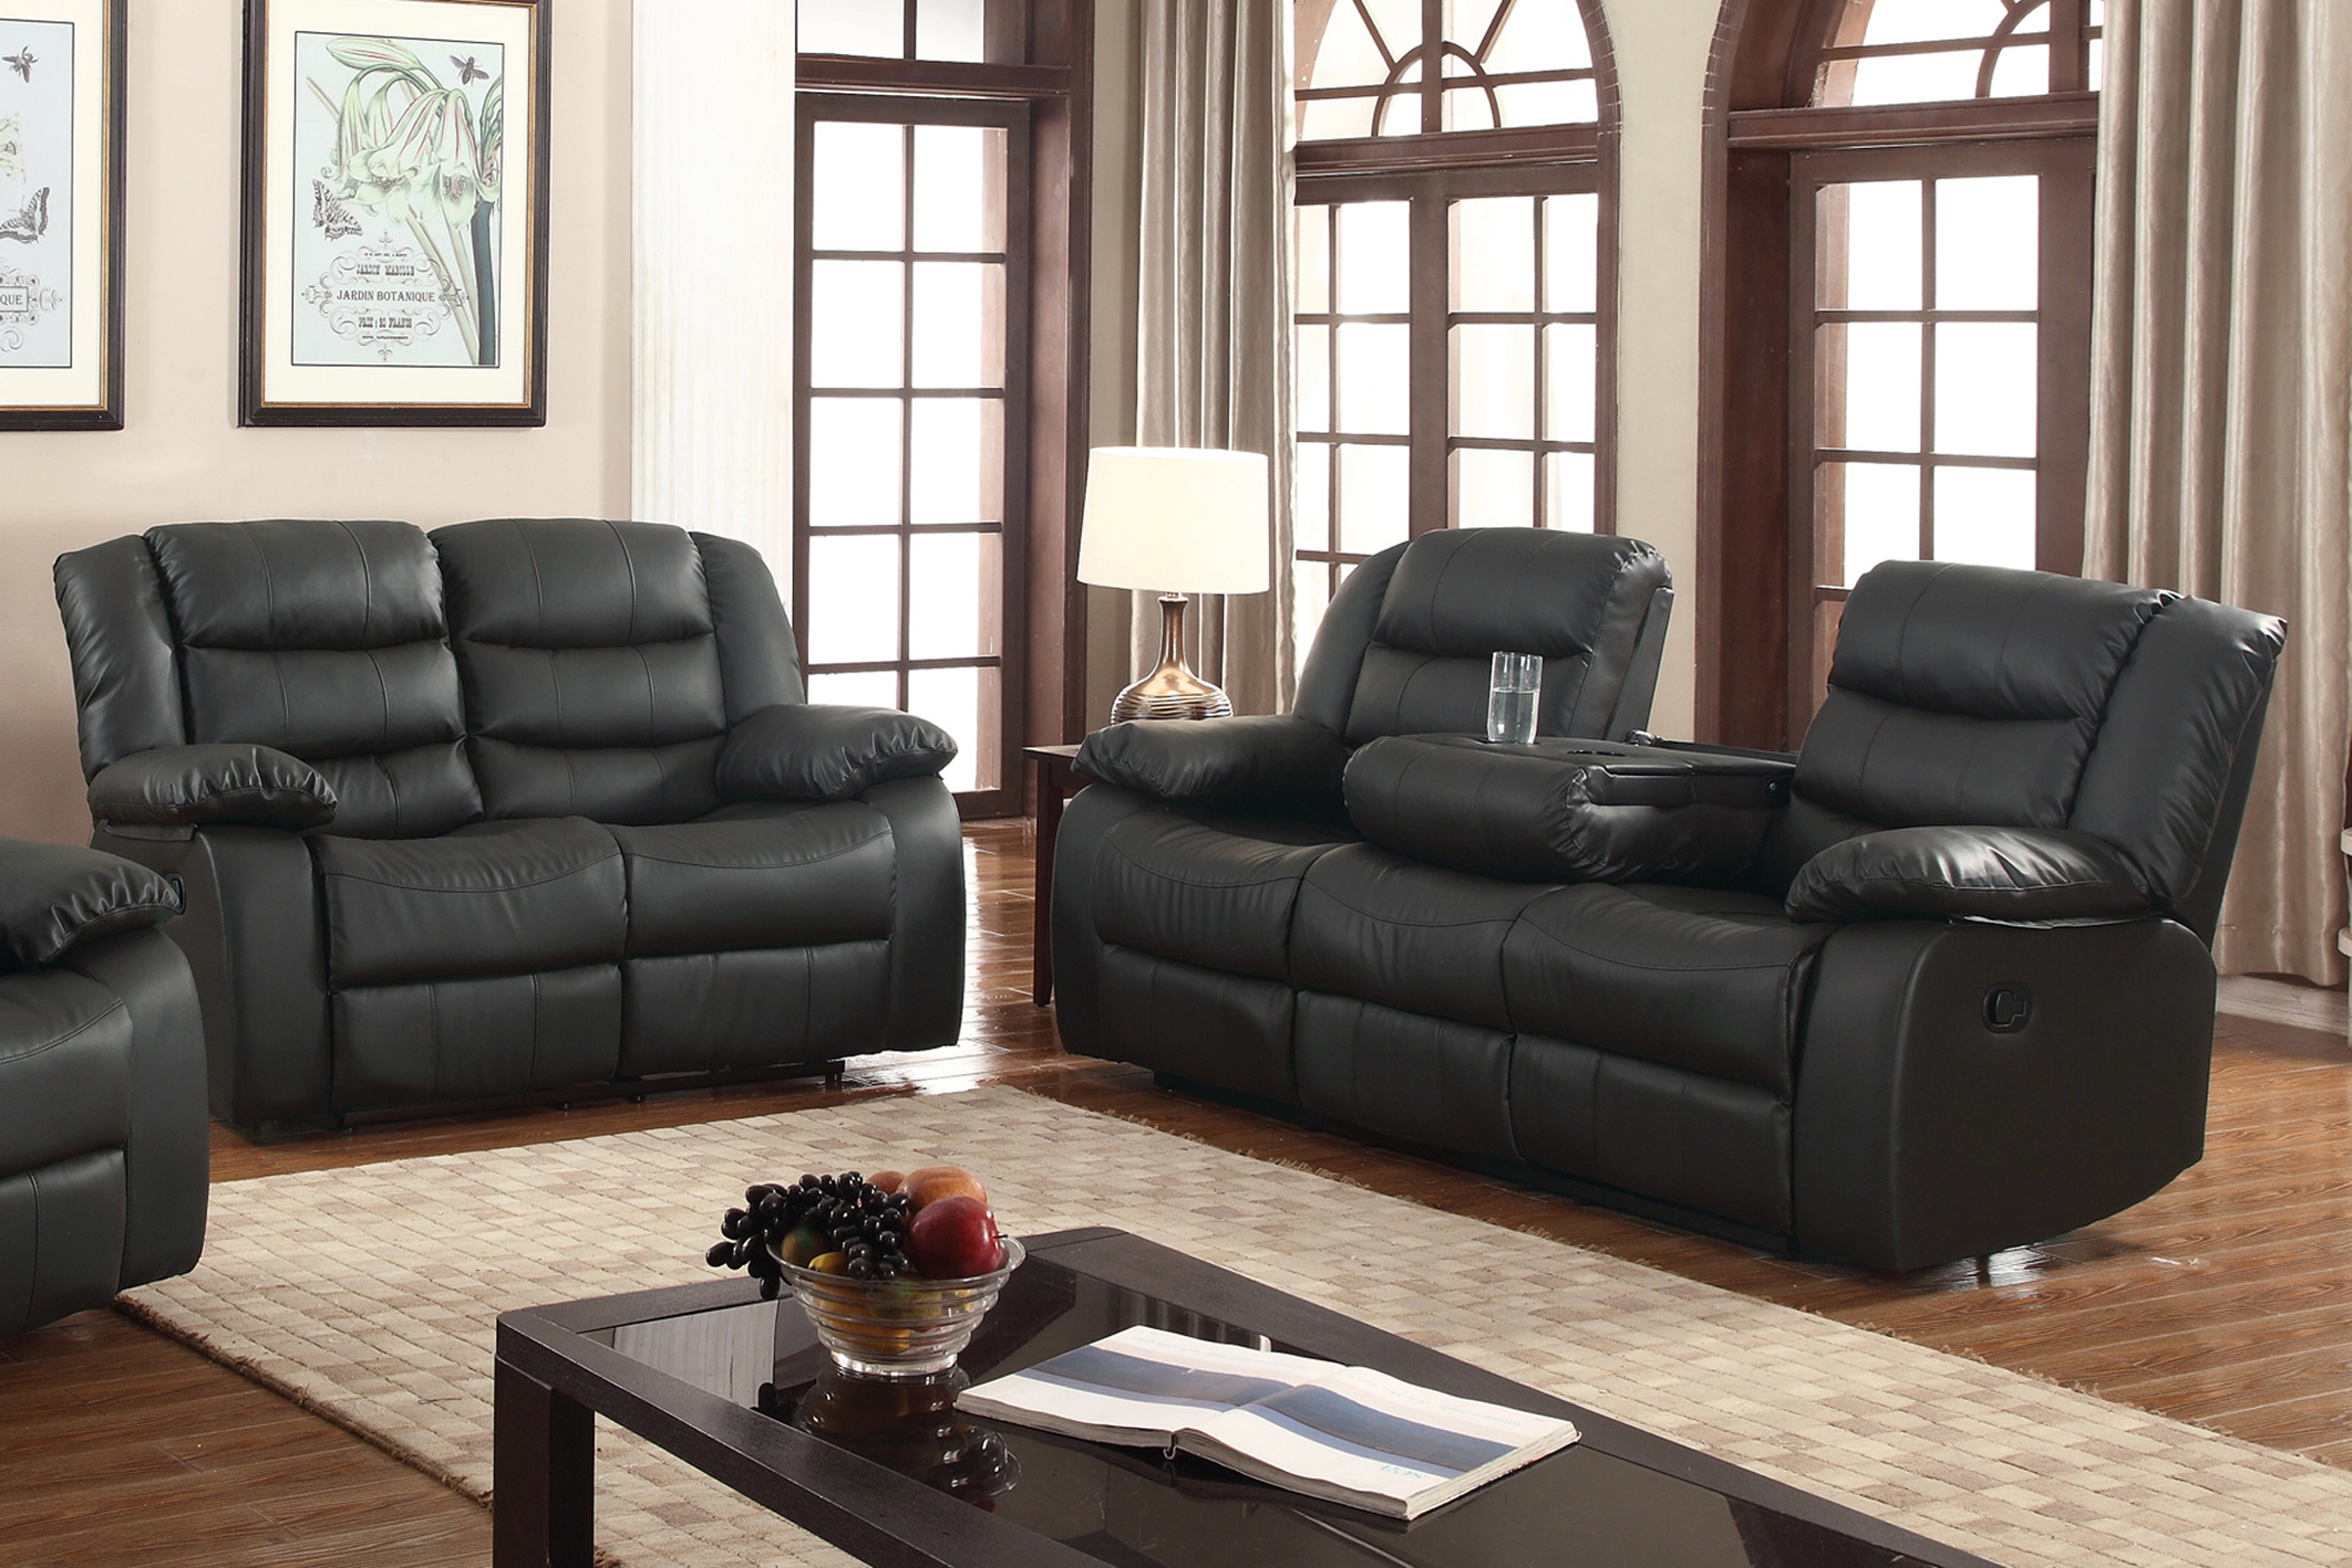 Layla 2 Pc Black Faux Leather Living Room Reclining Sofa And for Black Leather Living Room Sets